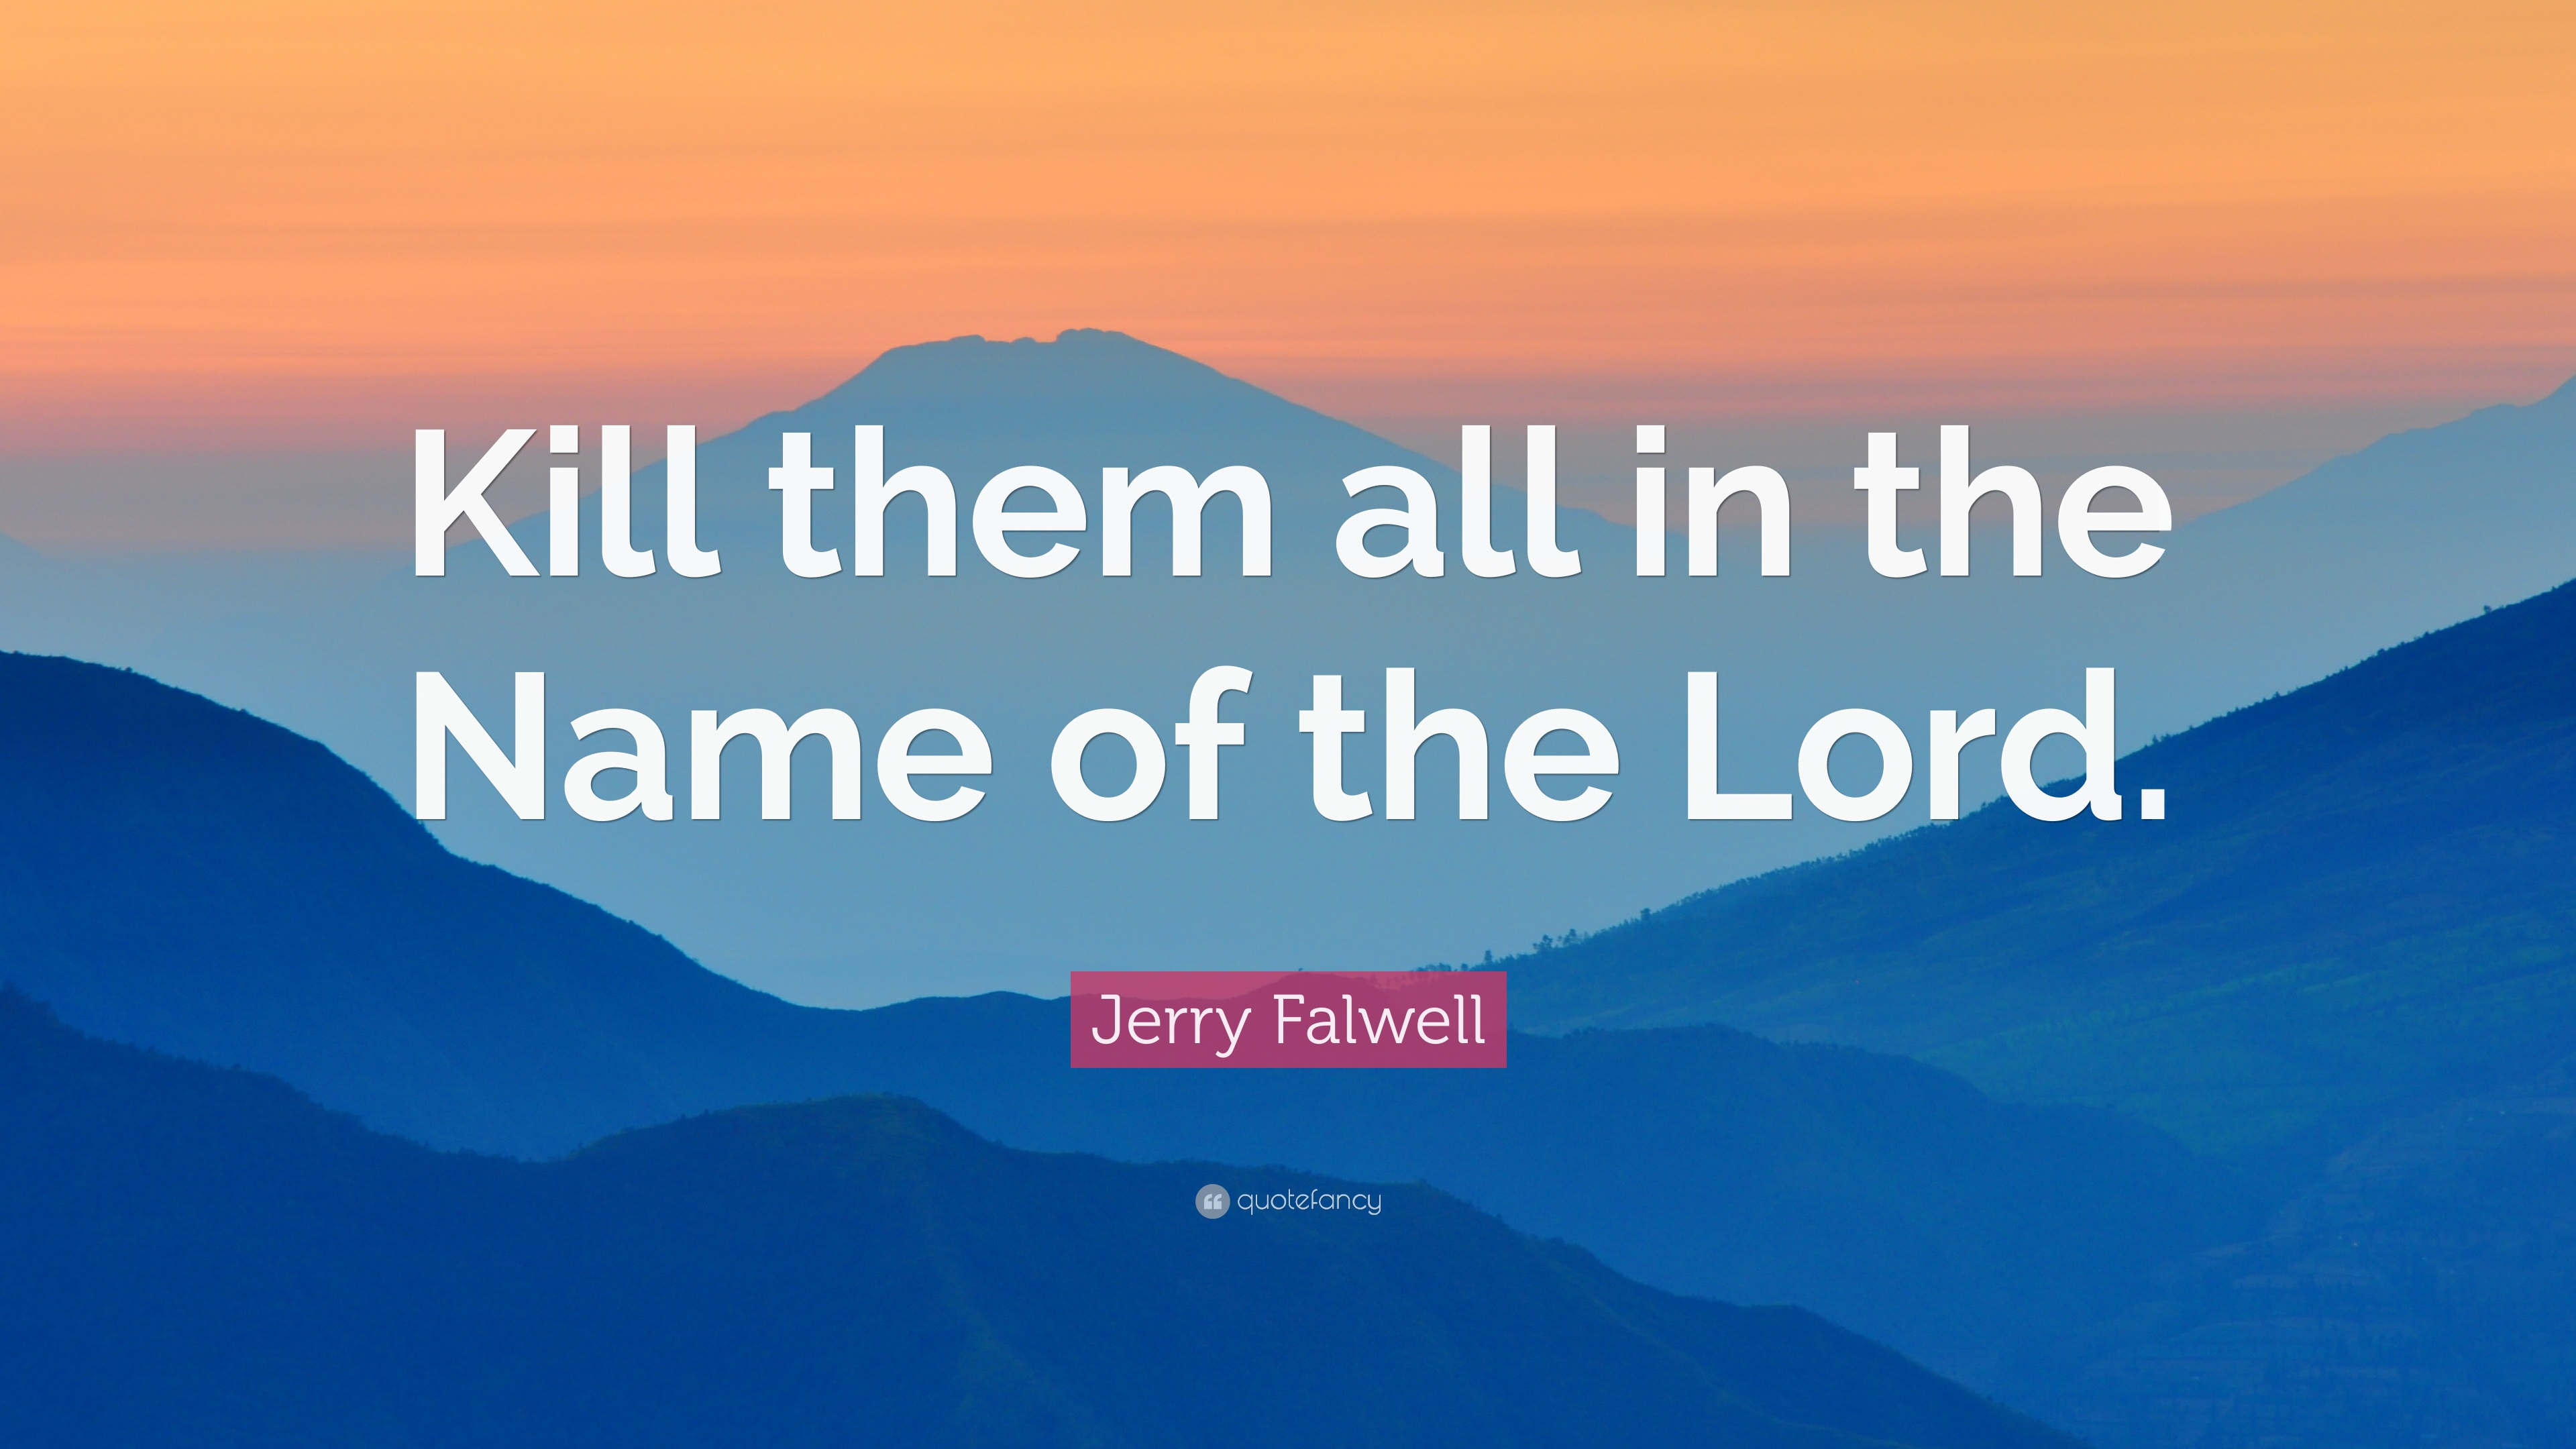 Download Wallpaper Lord Name - 913457-Jerry-Falwell-Quote-Kill-them-all-in-the-Name-of-the-Lord  HD_1001725.jpg